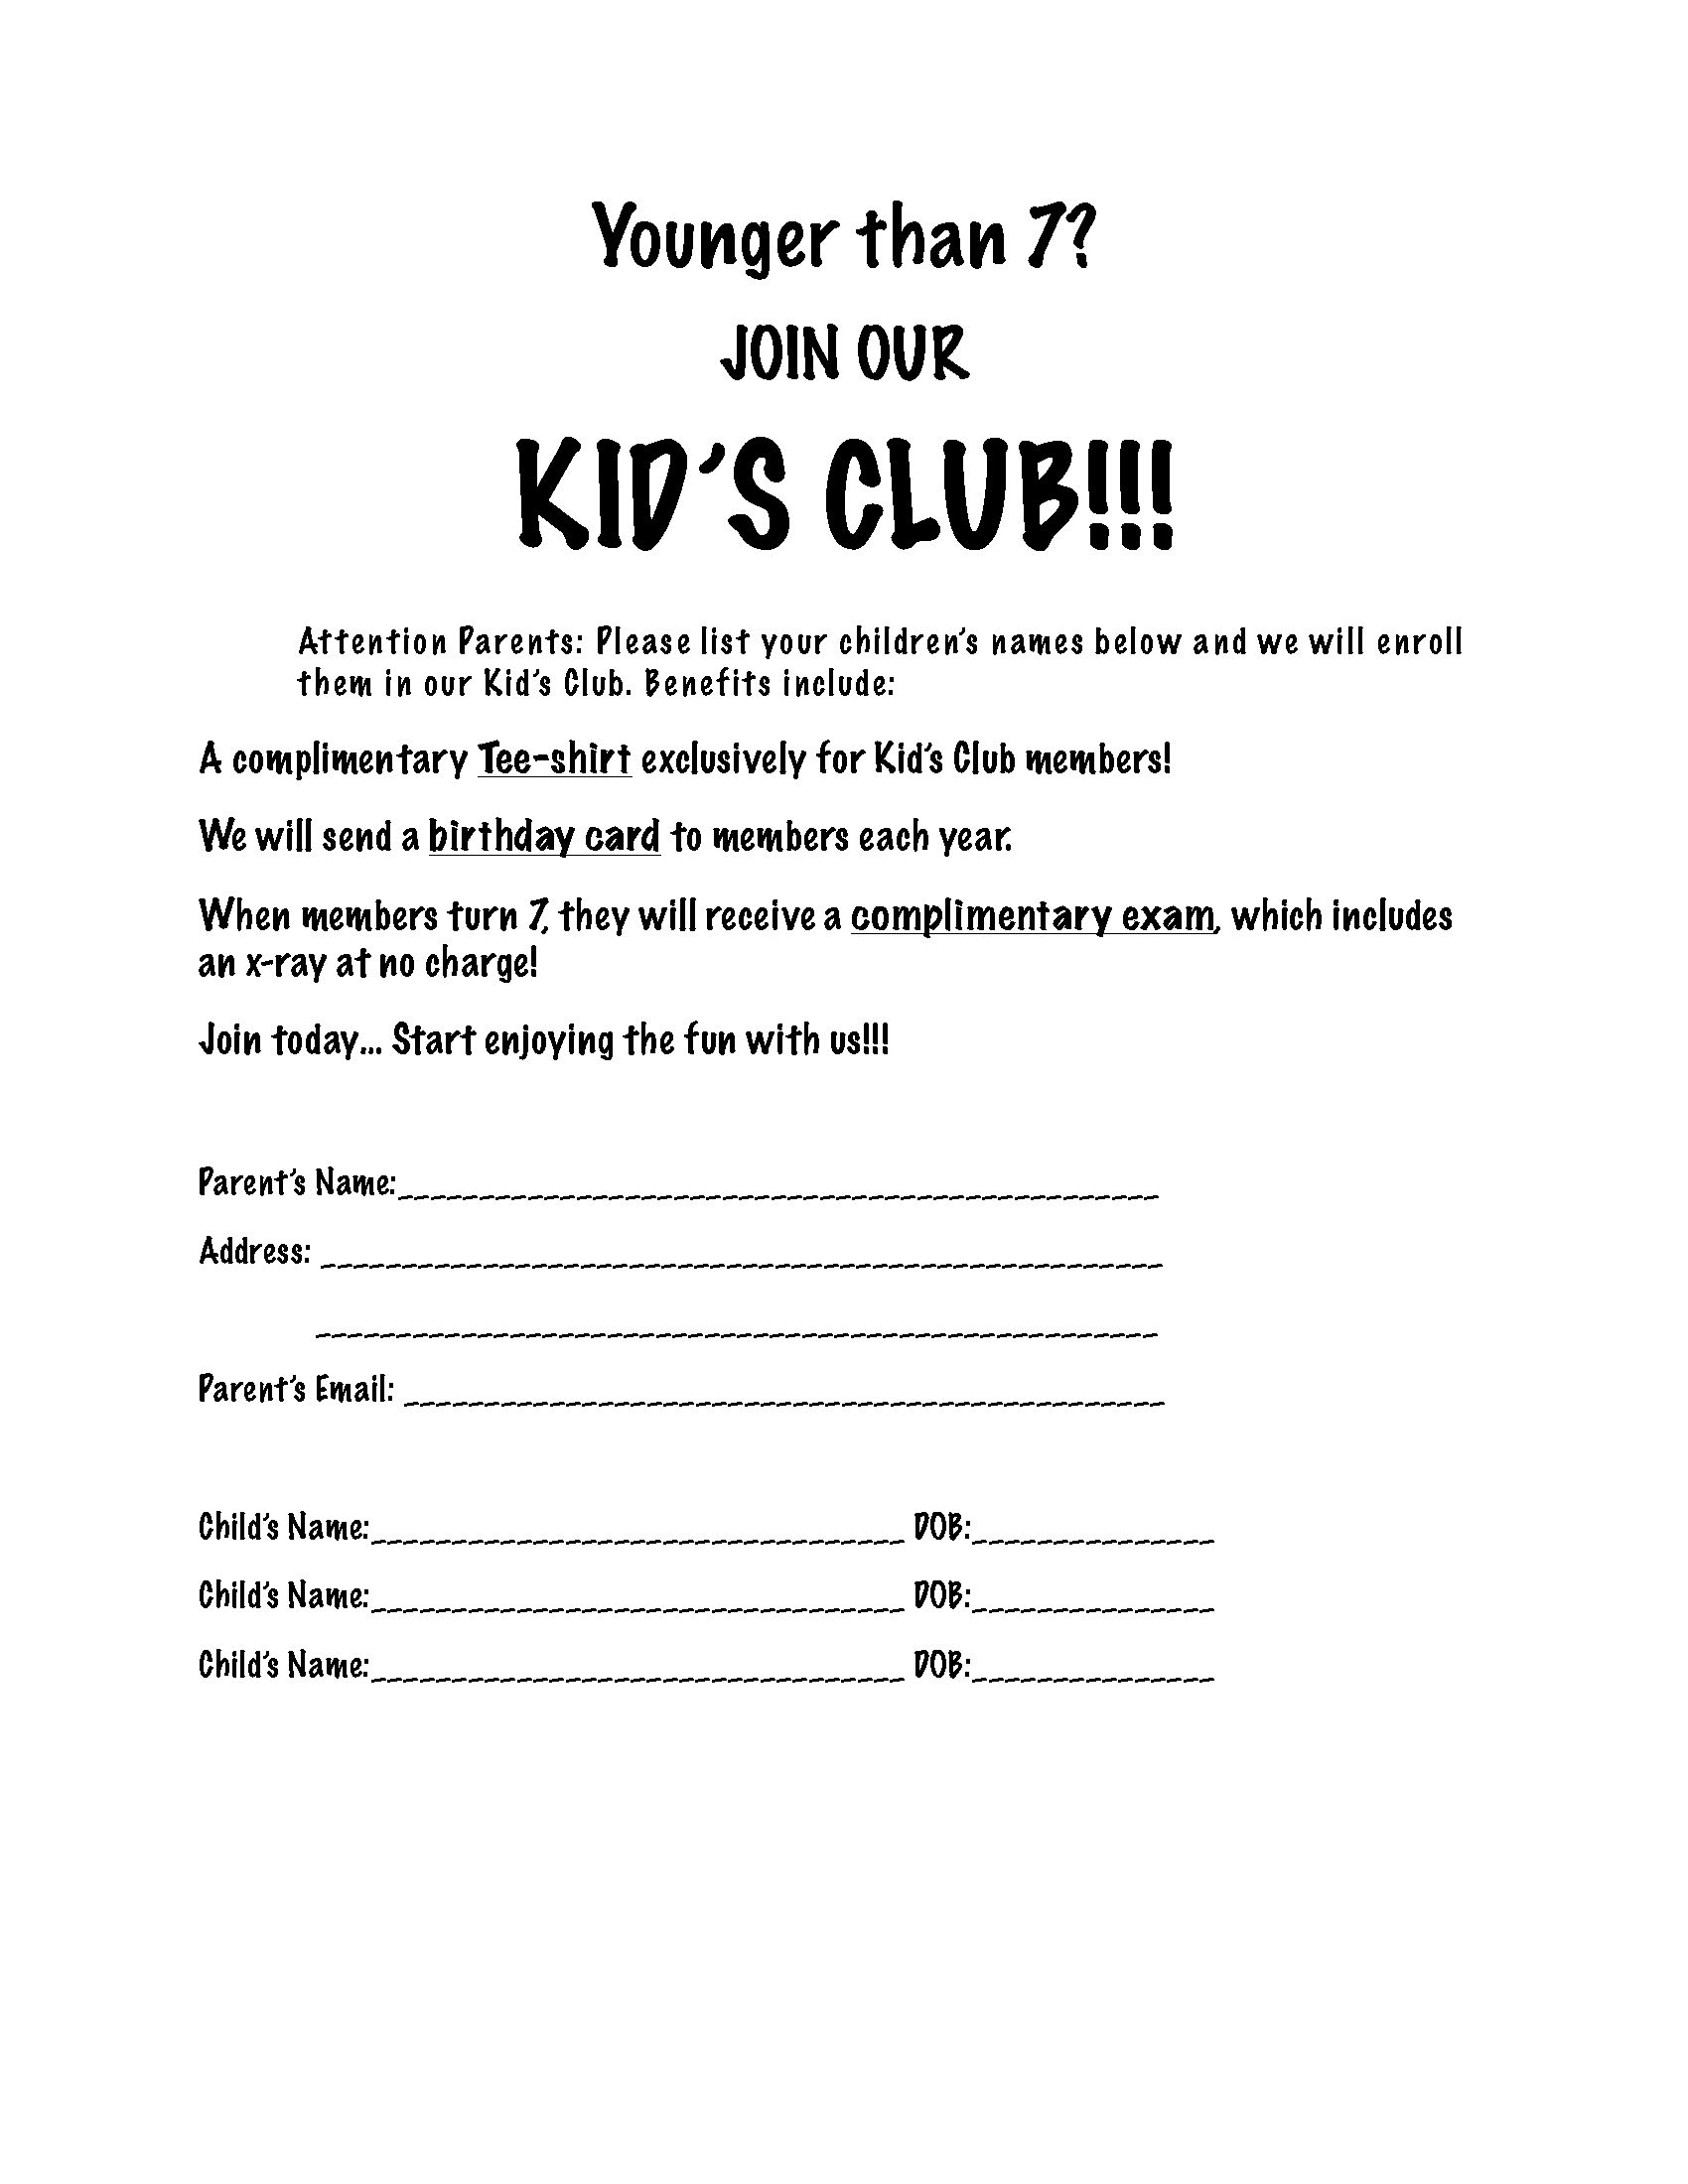 Kids-Club-Sign-Up-Sheet-pdf.jpg